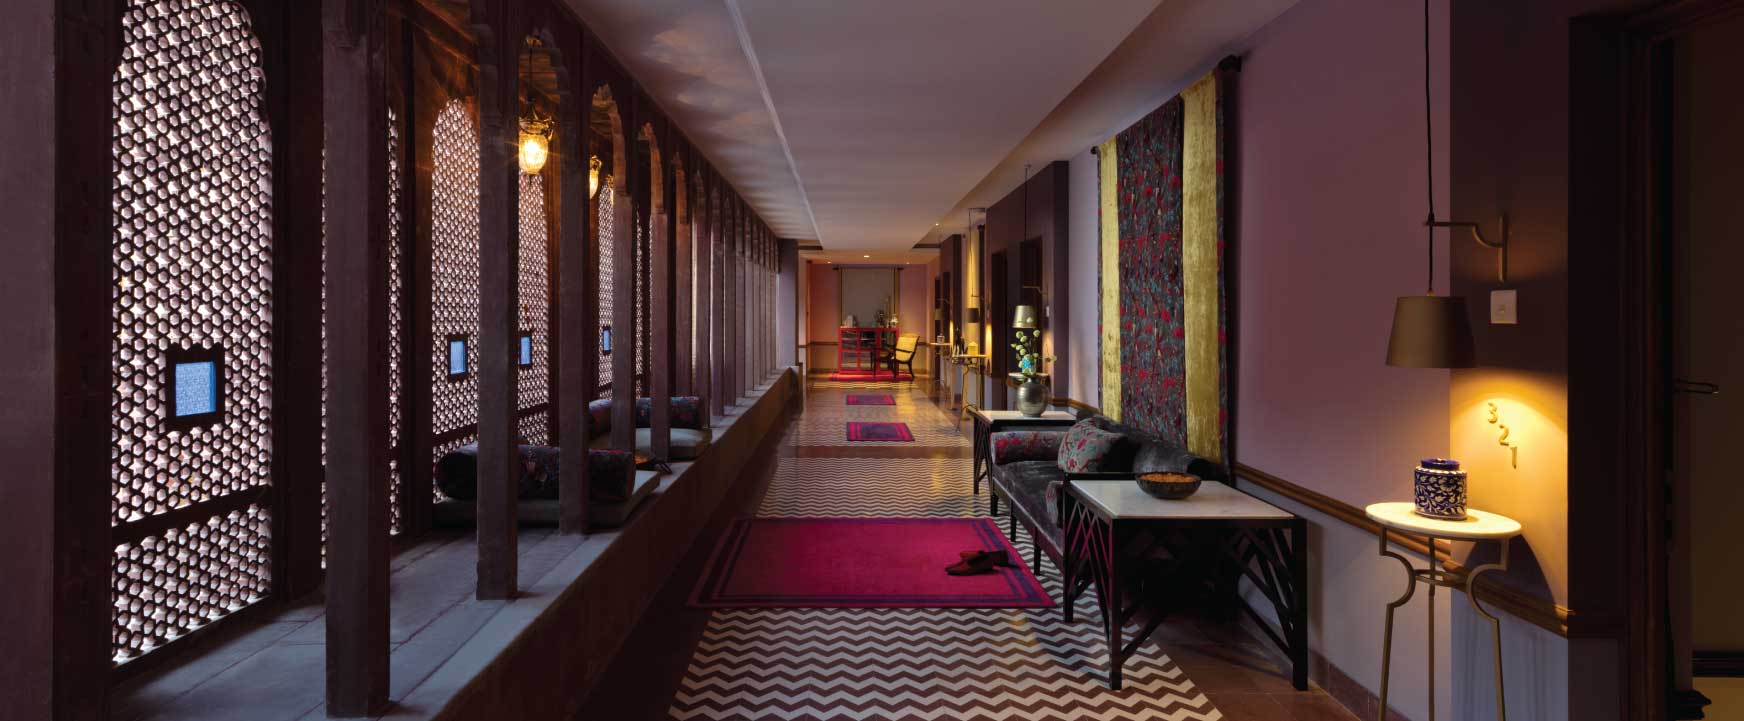 Palace Hotel in Bikaner